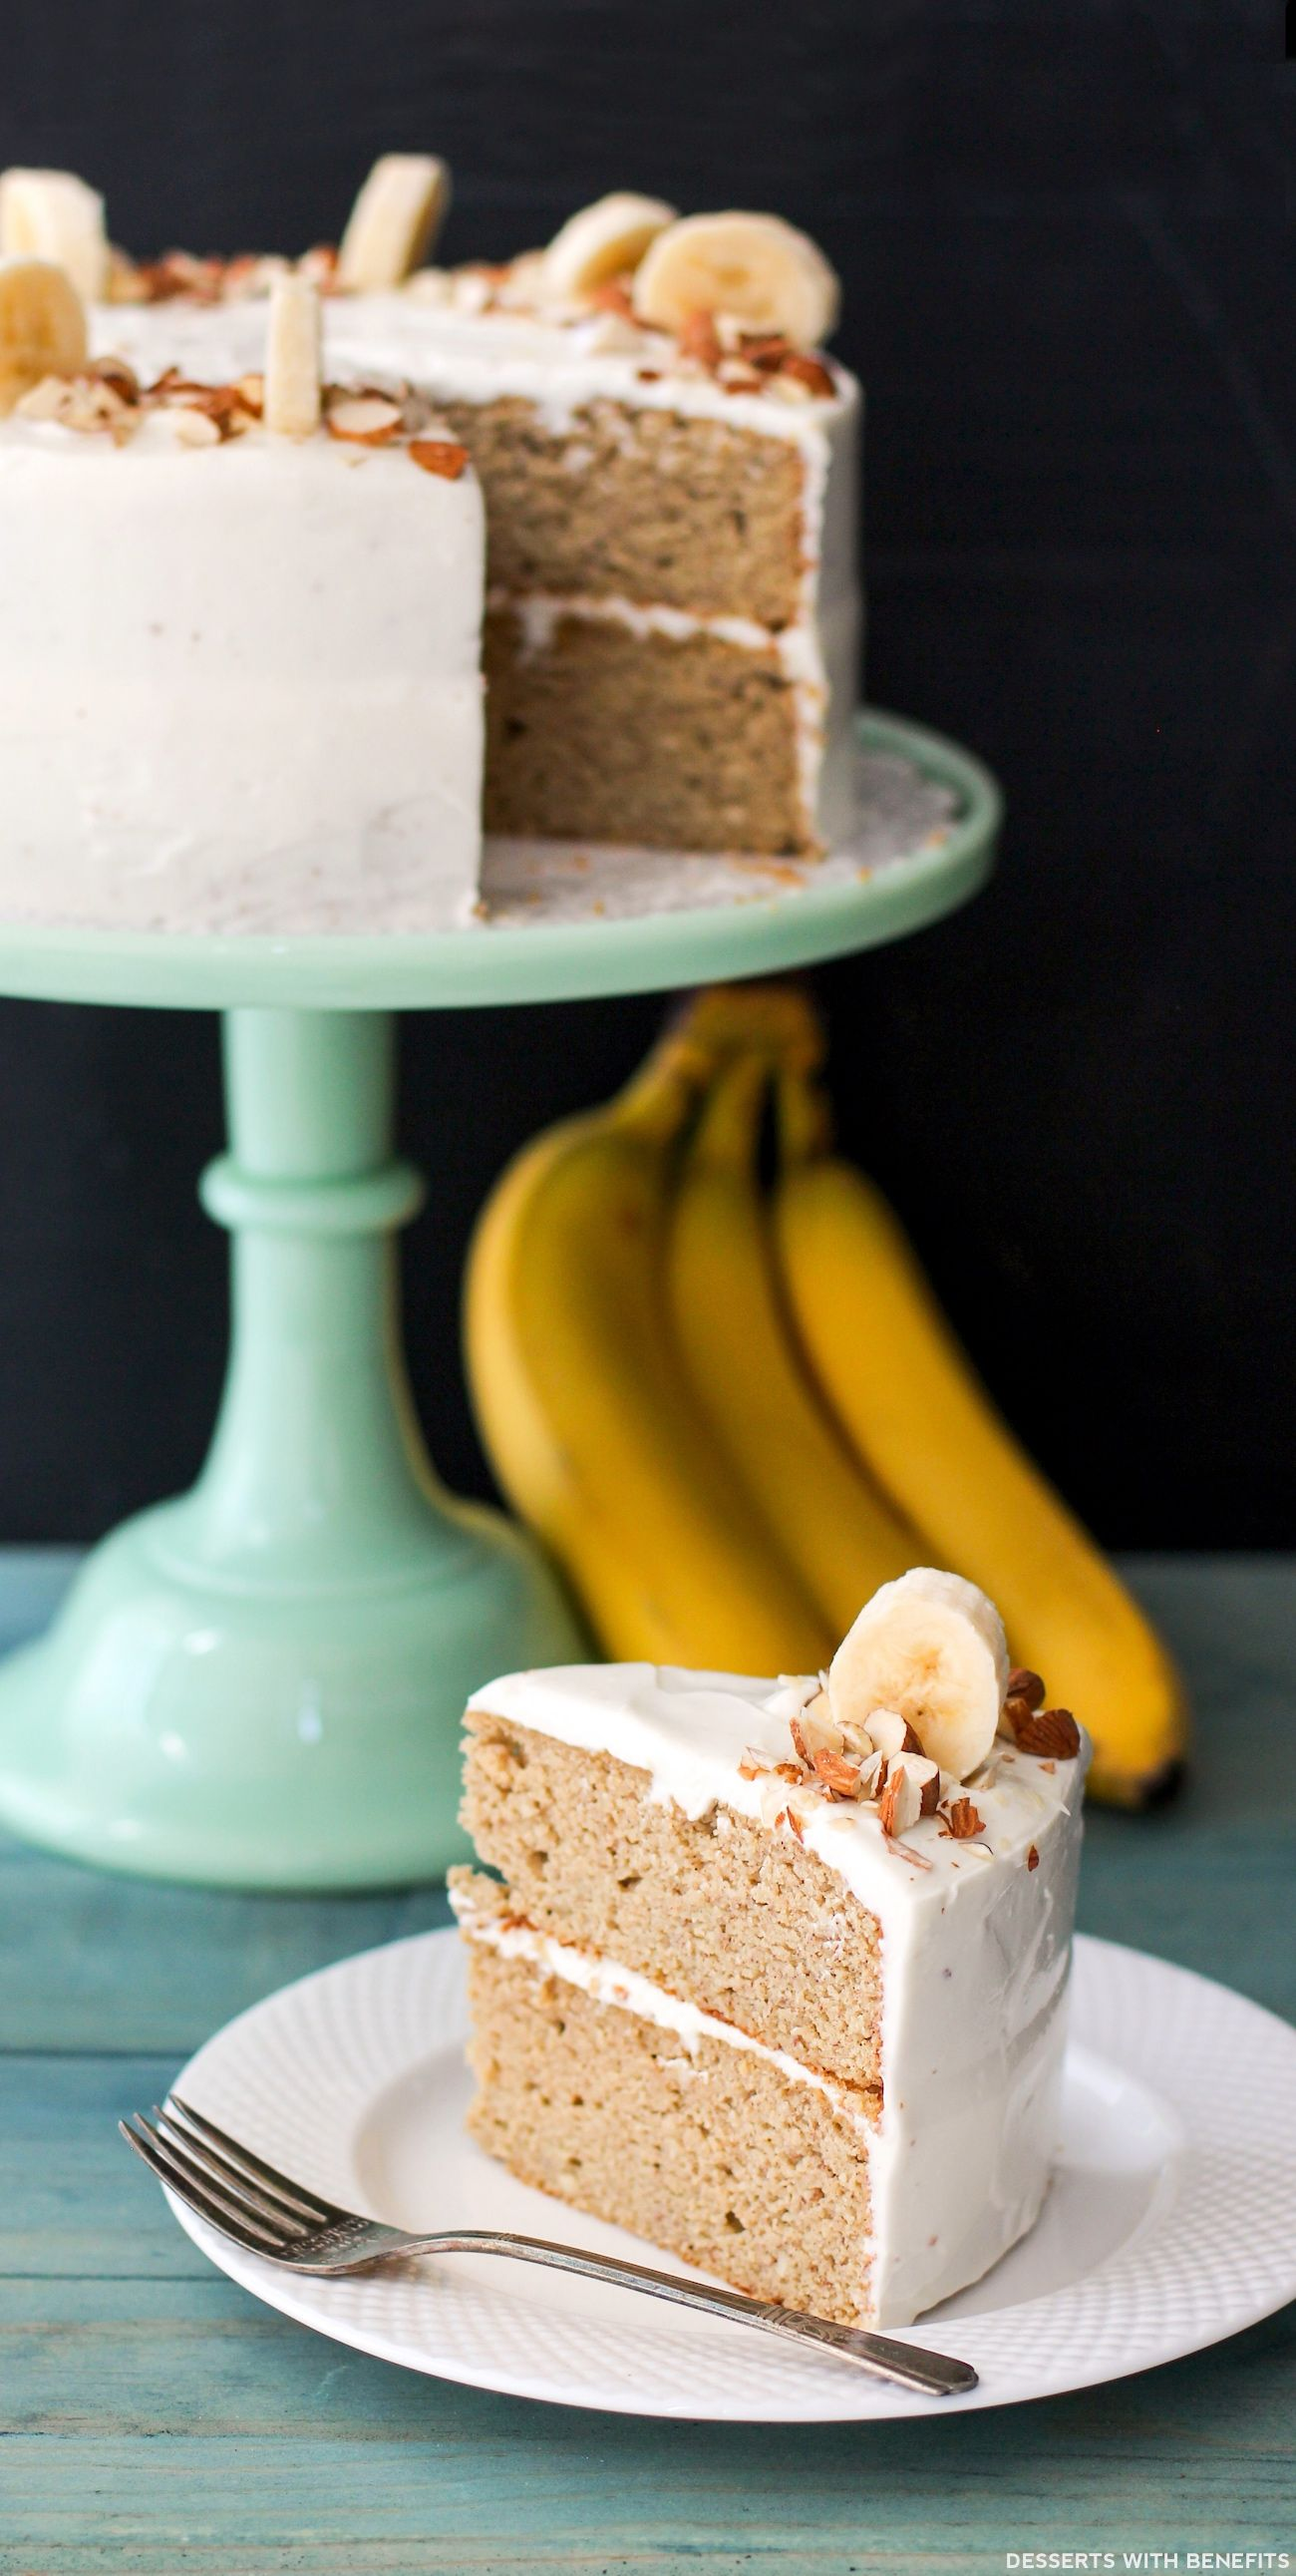 Healthy Banana Cake with Cream Cheese Frosting Recipe